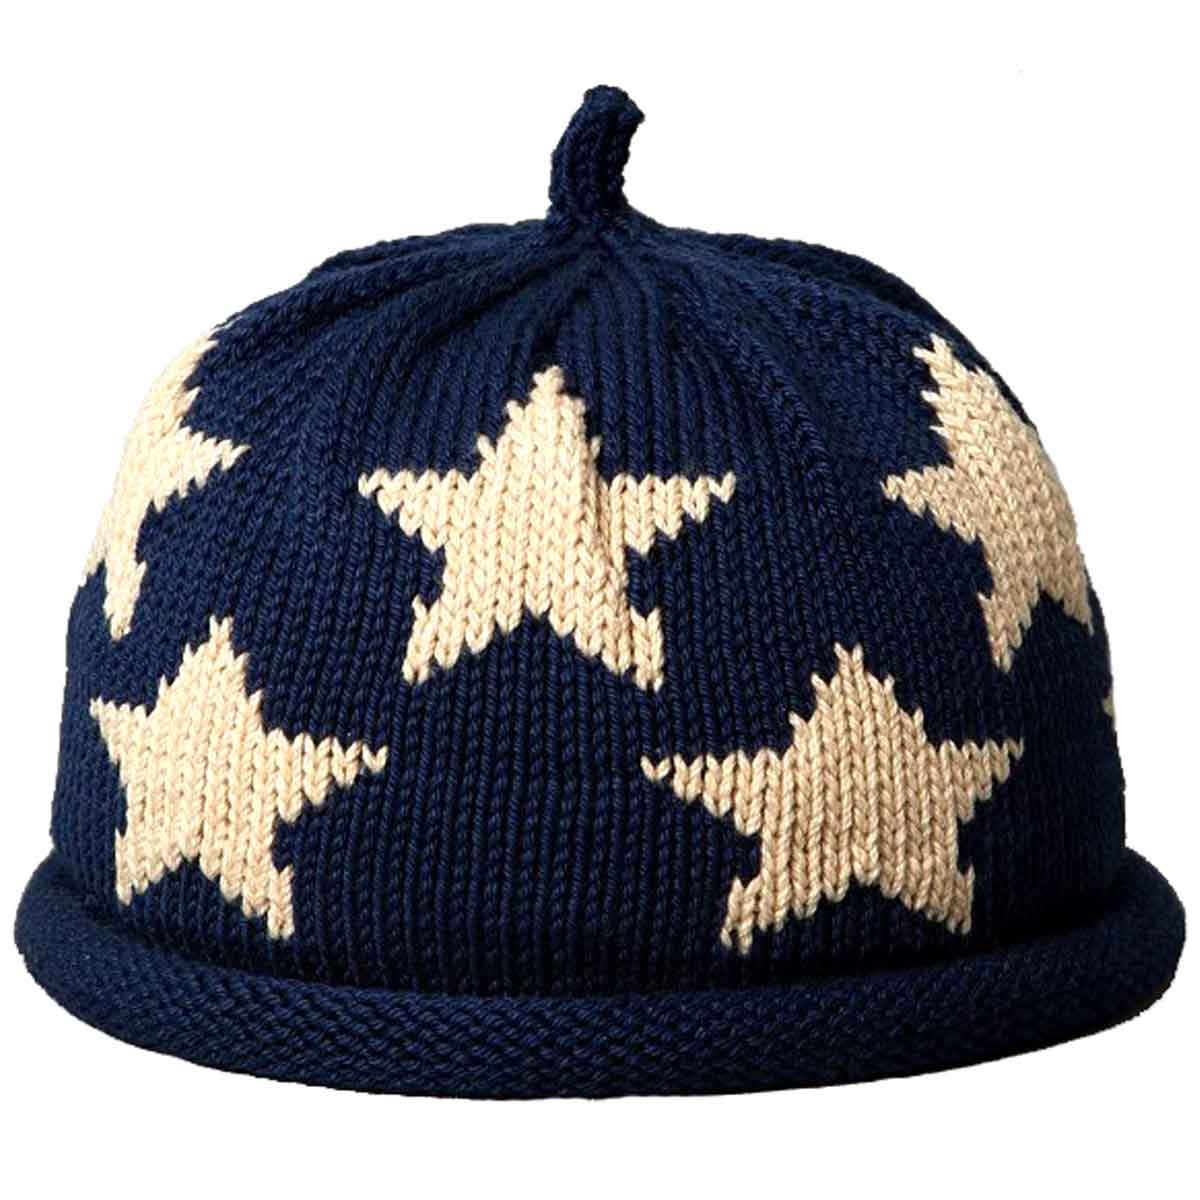 Navy Knit Hat with Beige Stars - Margareta Horn Design e877f0c6033